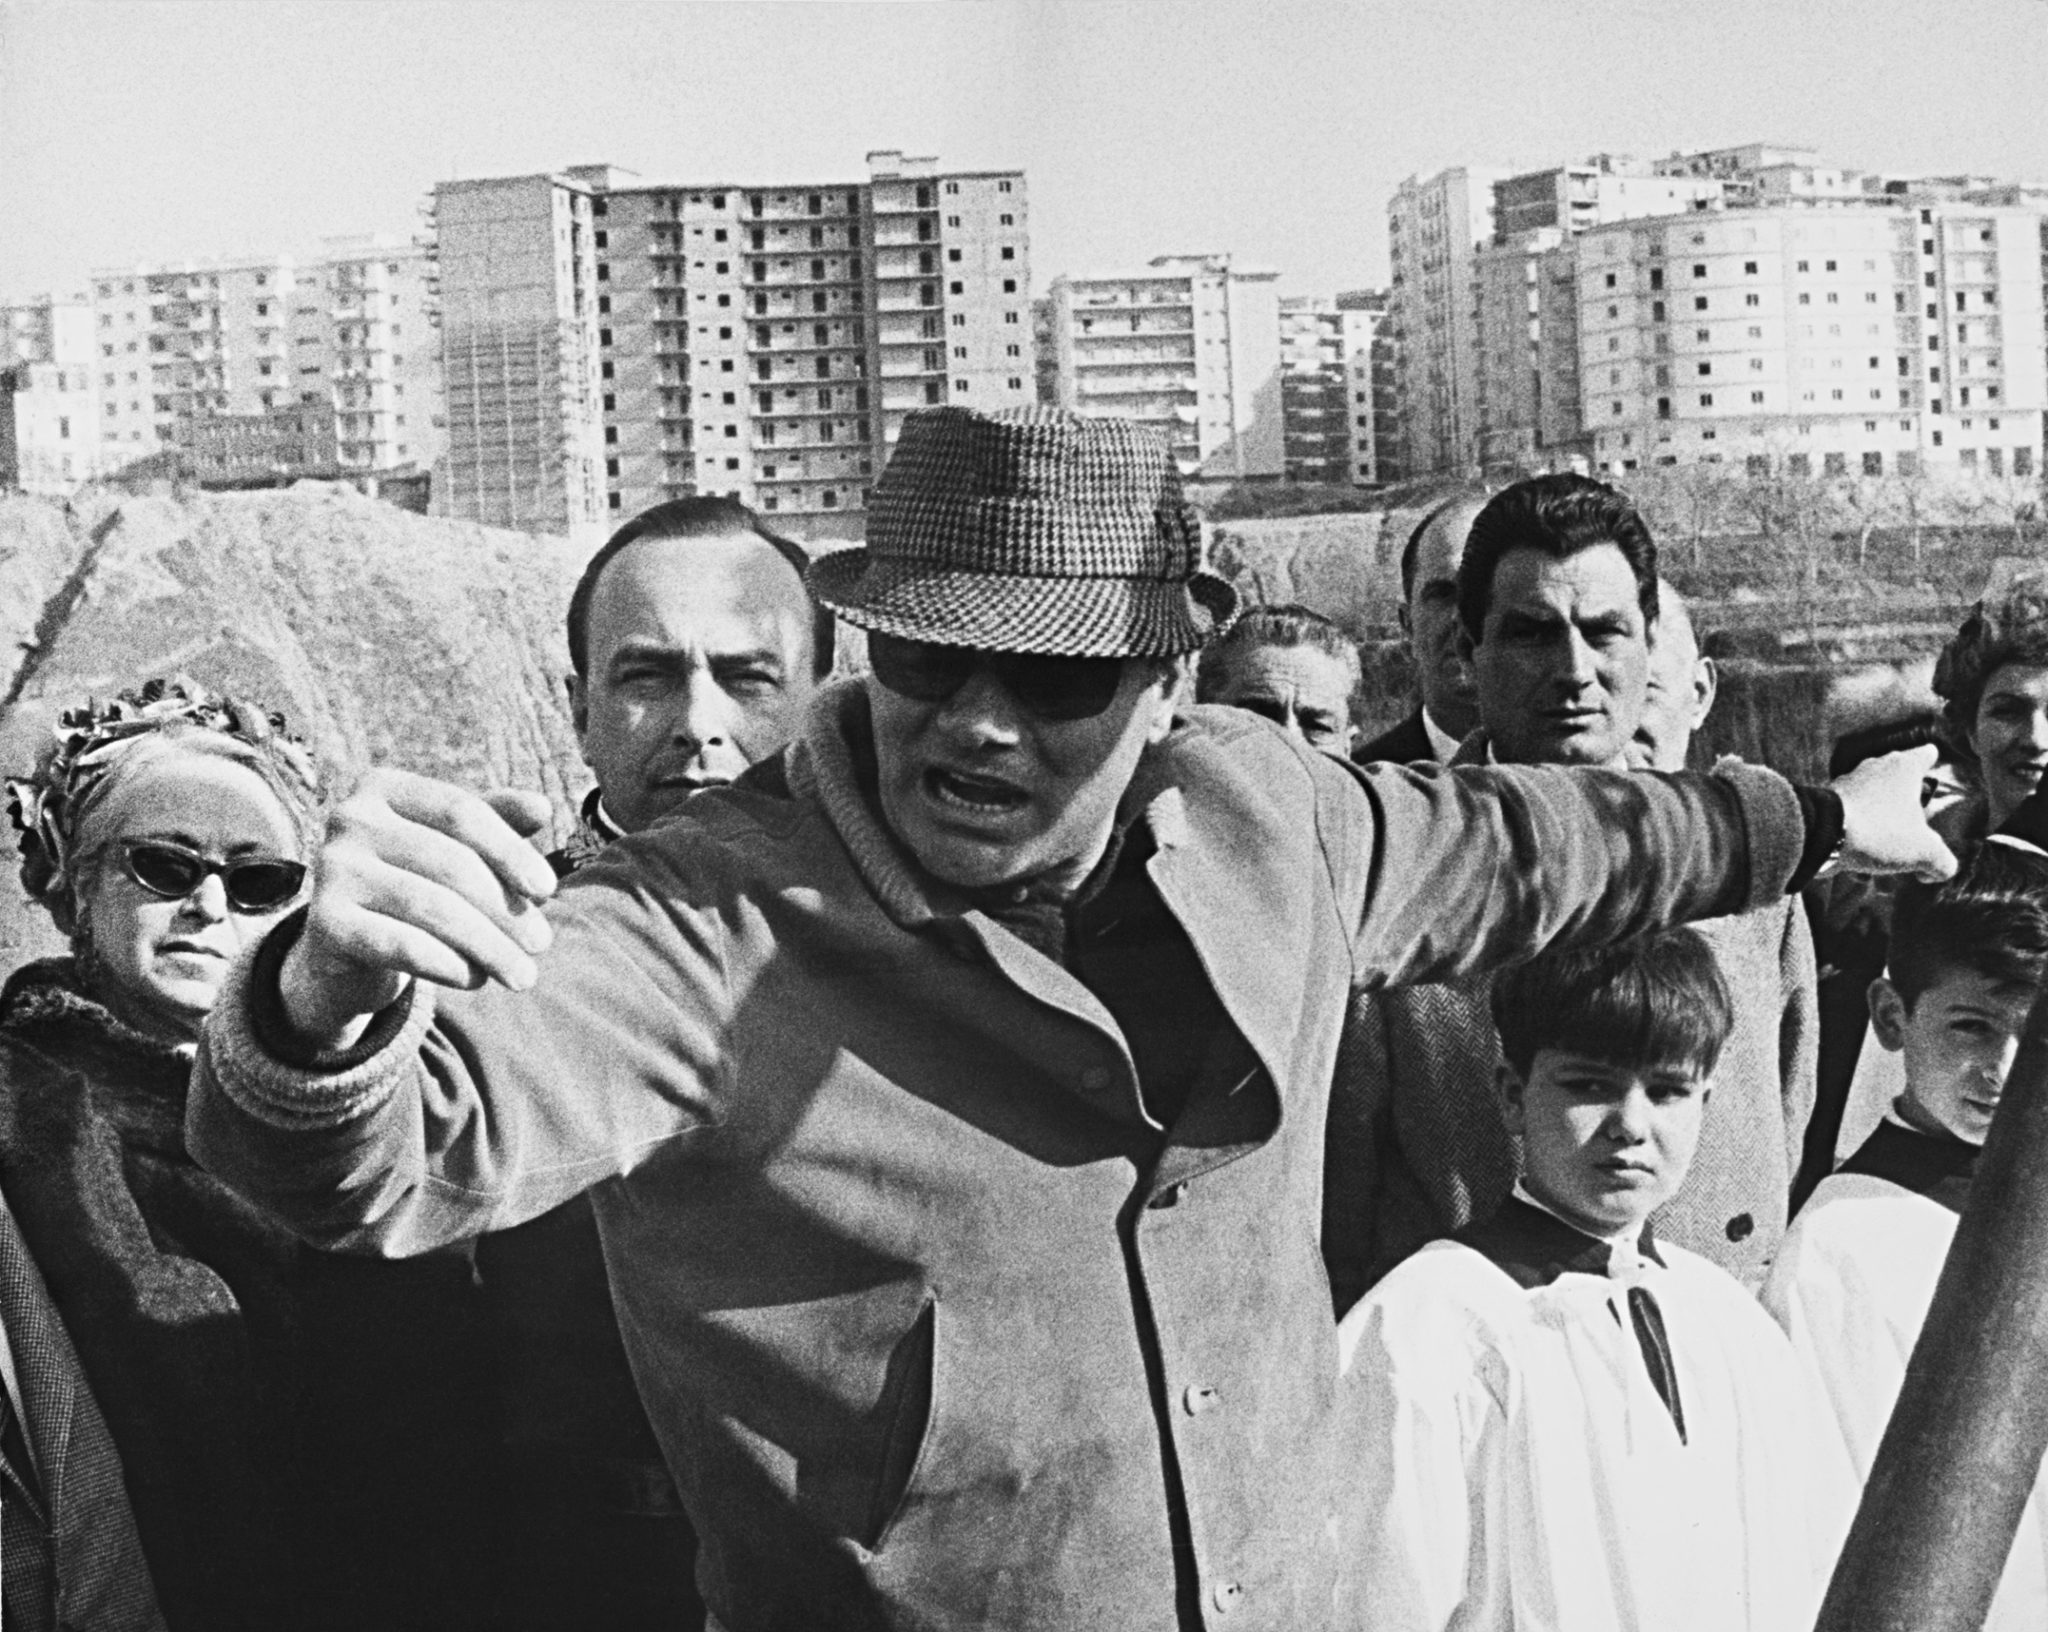 Francesco Rosi: un documentario ripercorre l'importanza civile del suo cinema, Citizen Rosi